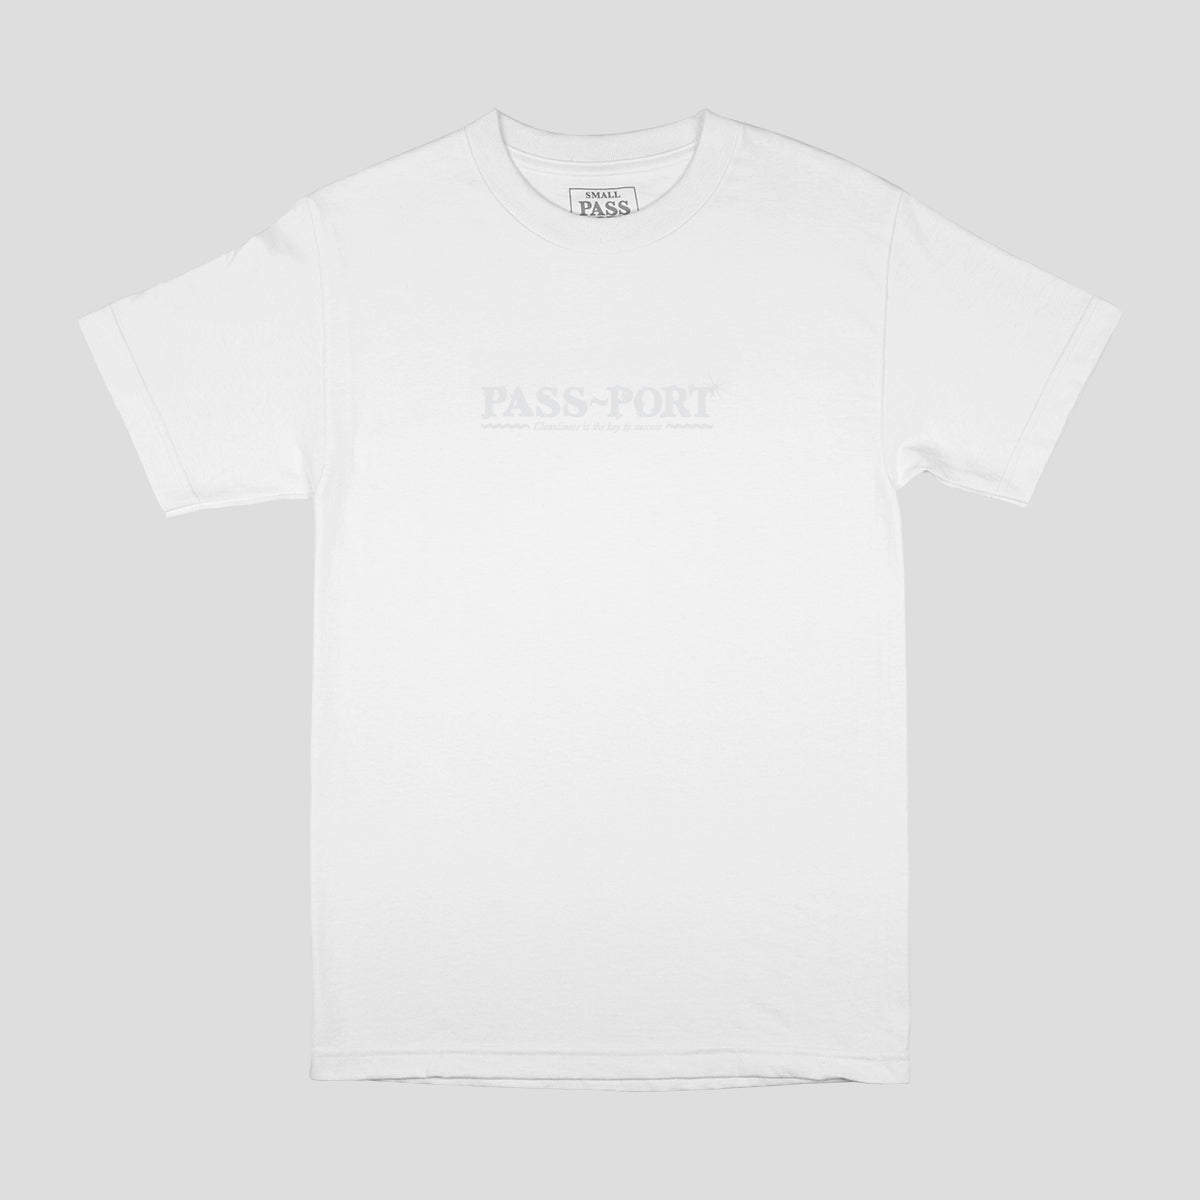 "PASS~PORT ""BUBBLES"" TEE WHITE"